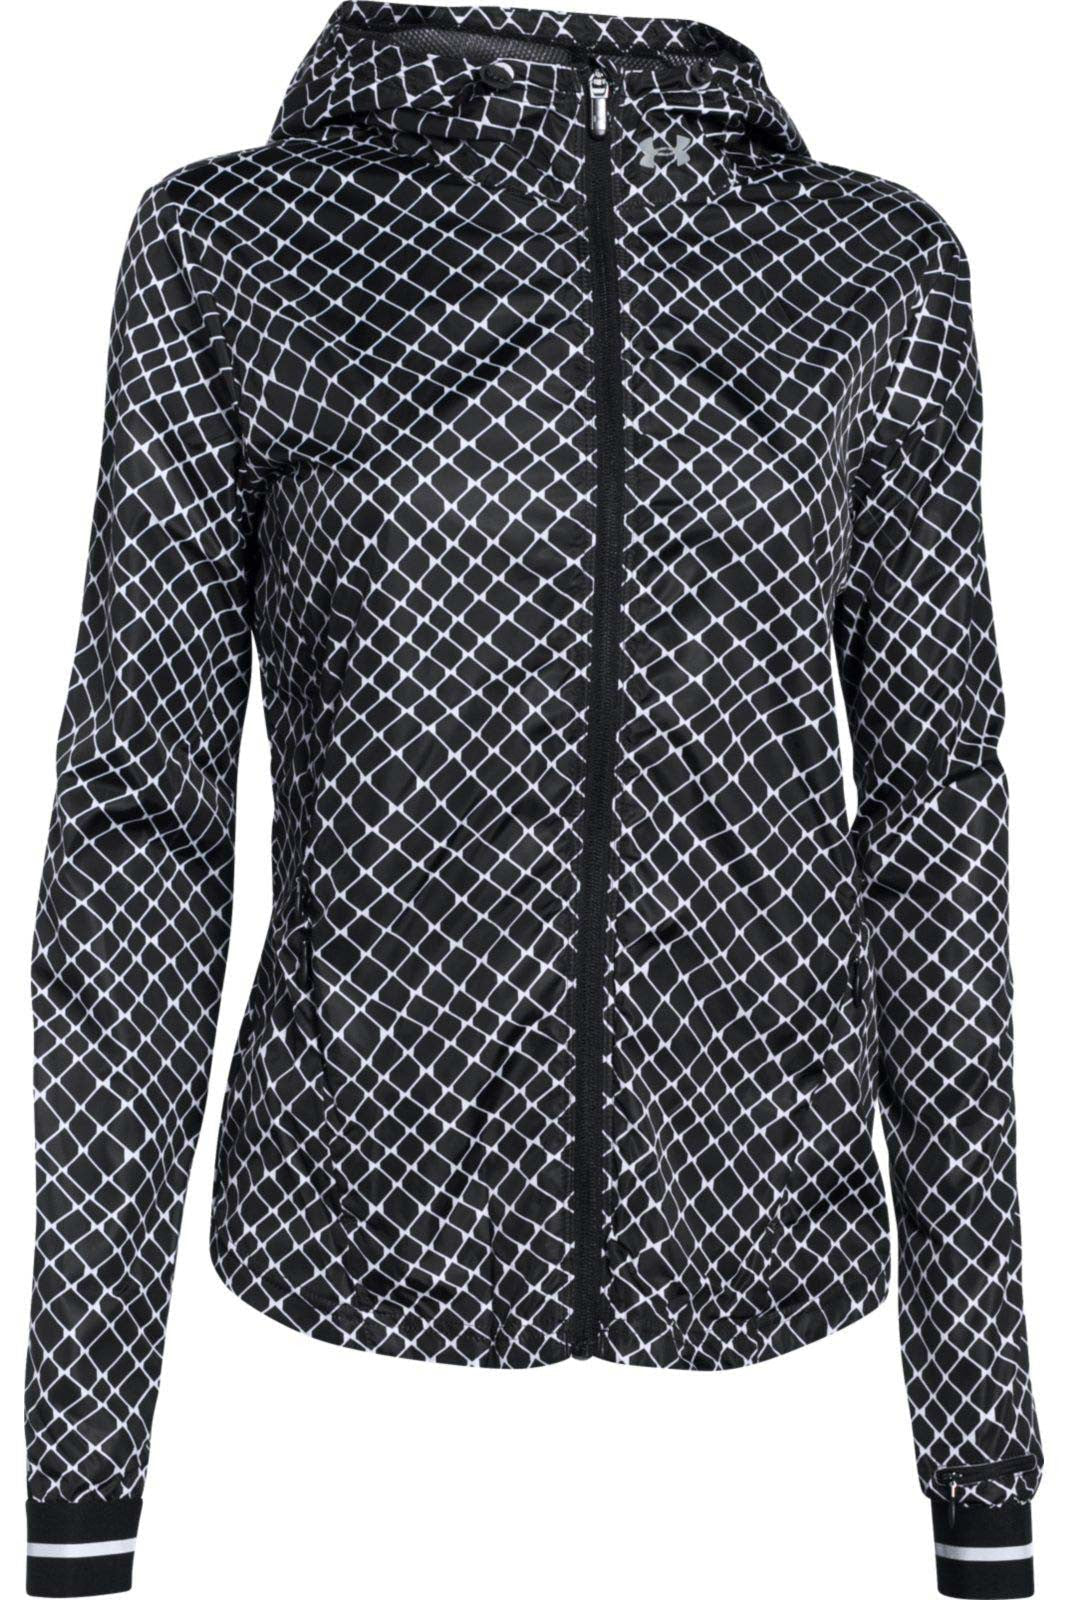 Under Armour Printed Layered Up Storm Jacket BLK/WHT/REF image 2 - The Sports Edit